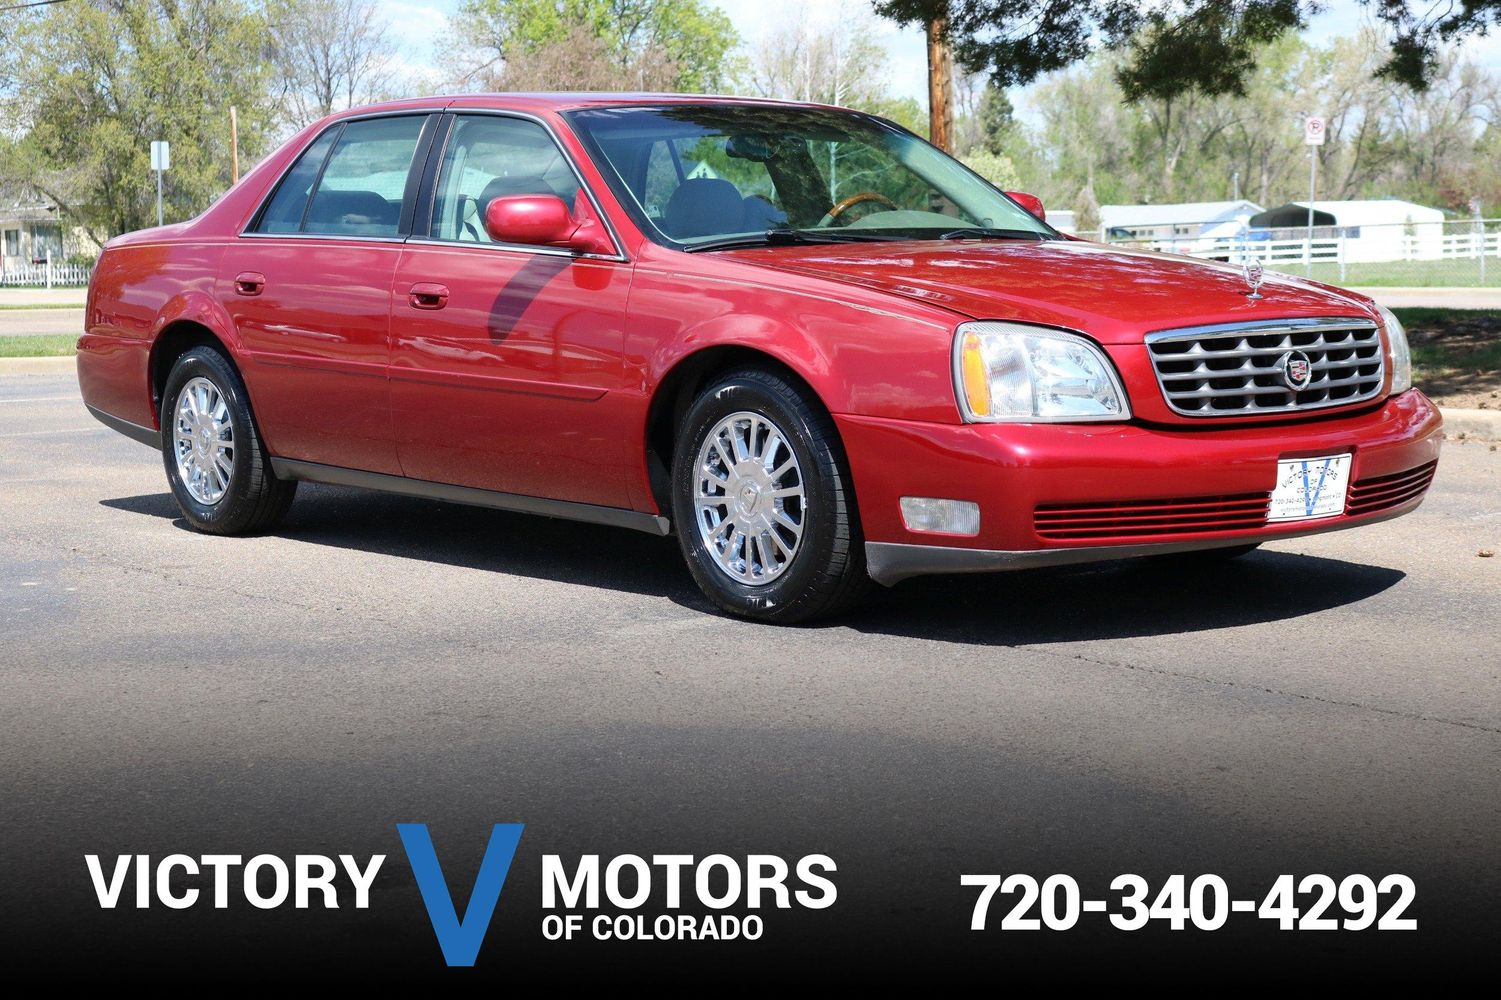 2005 cadillac deville dhs victory motors of colorado 2005 cadillac deville dhs victory